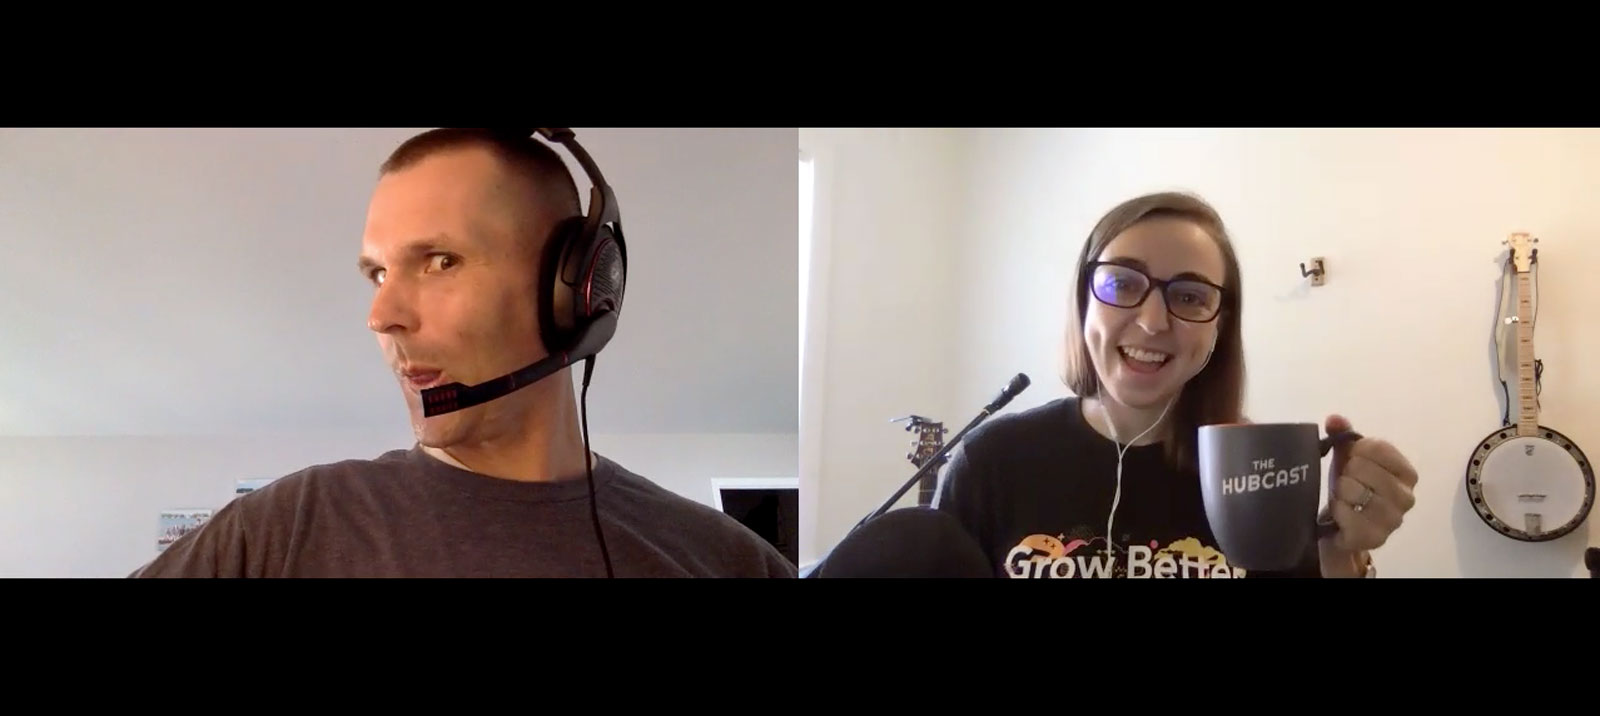 Close Date vs. Entered Stage Date, Editable Shopify Deals, & Marketo at INBOUND?? [Hubcast 229]